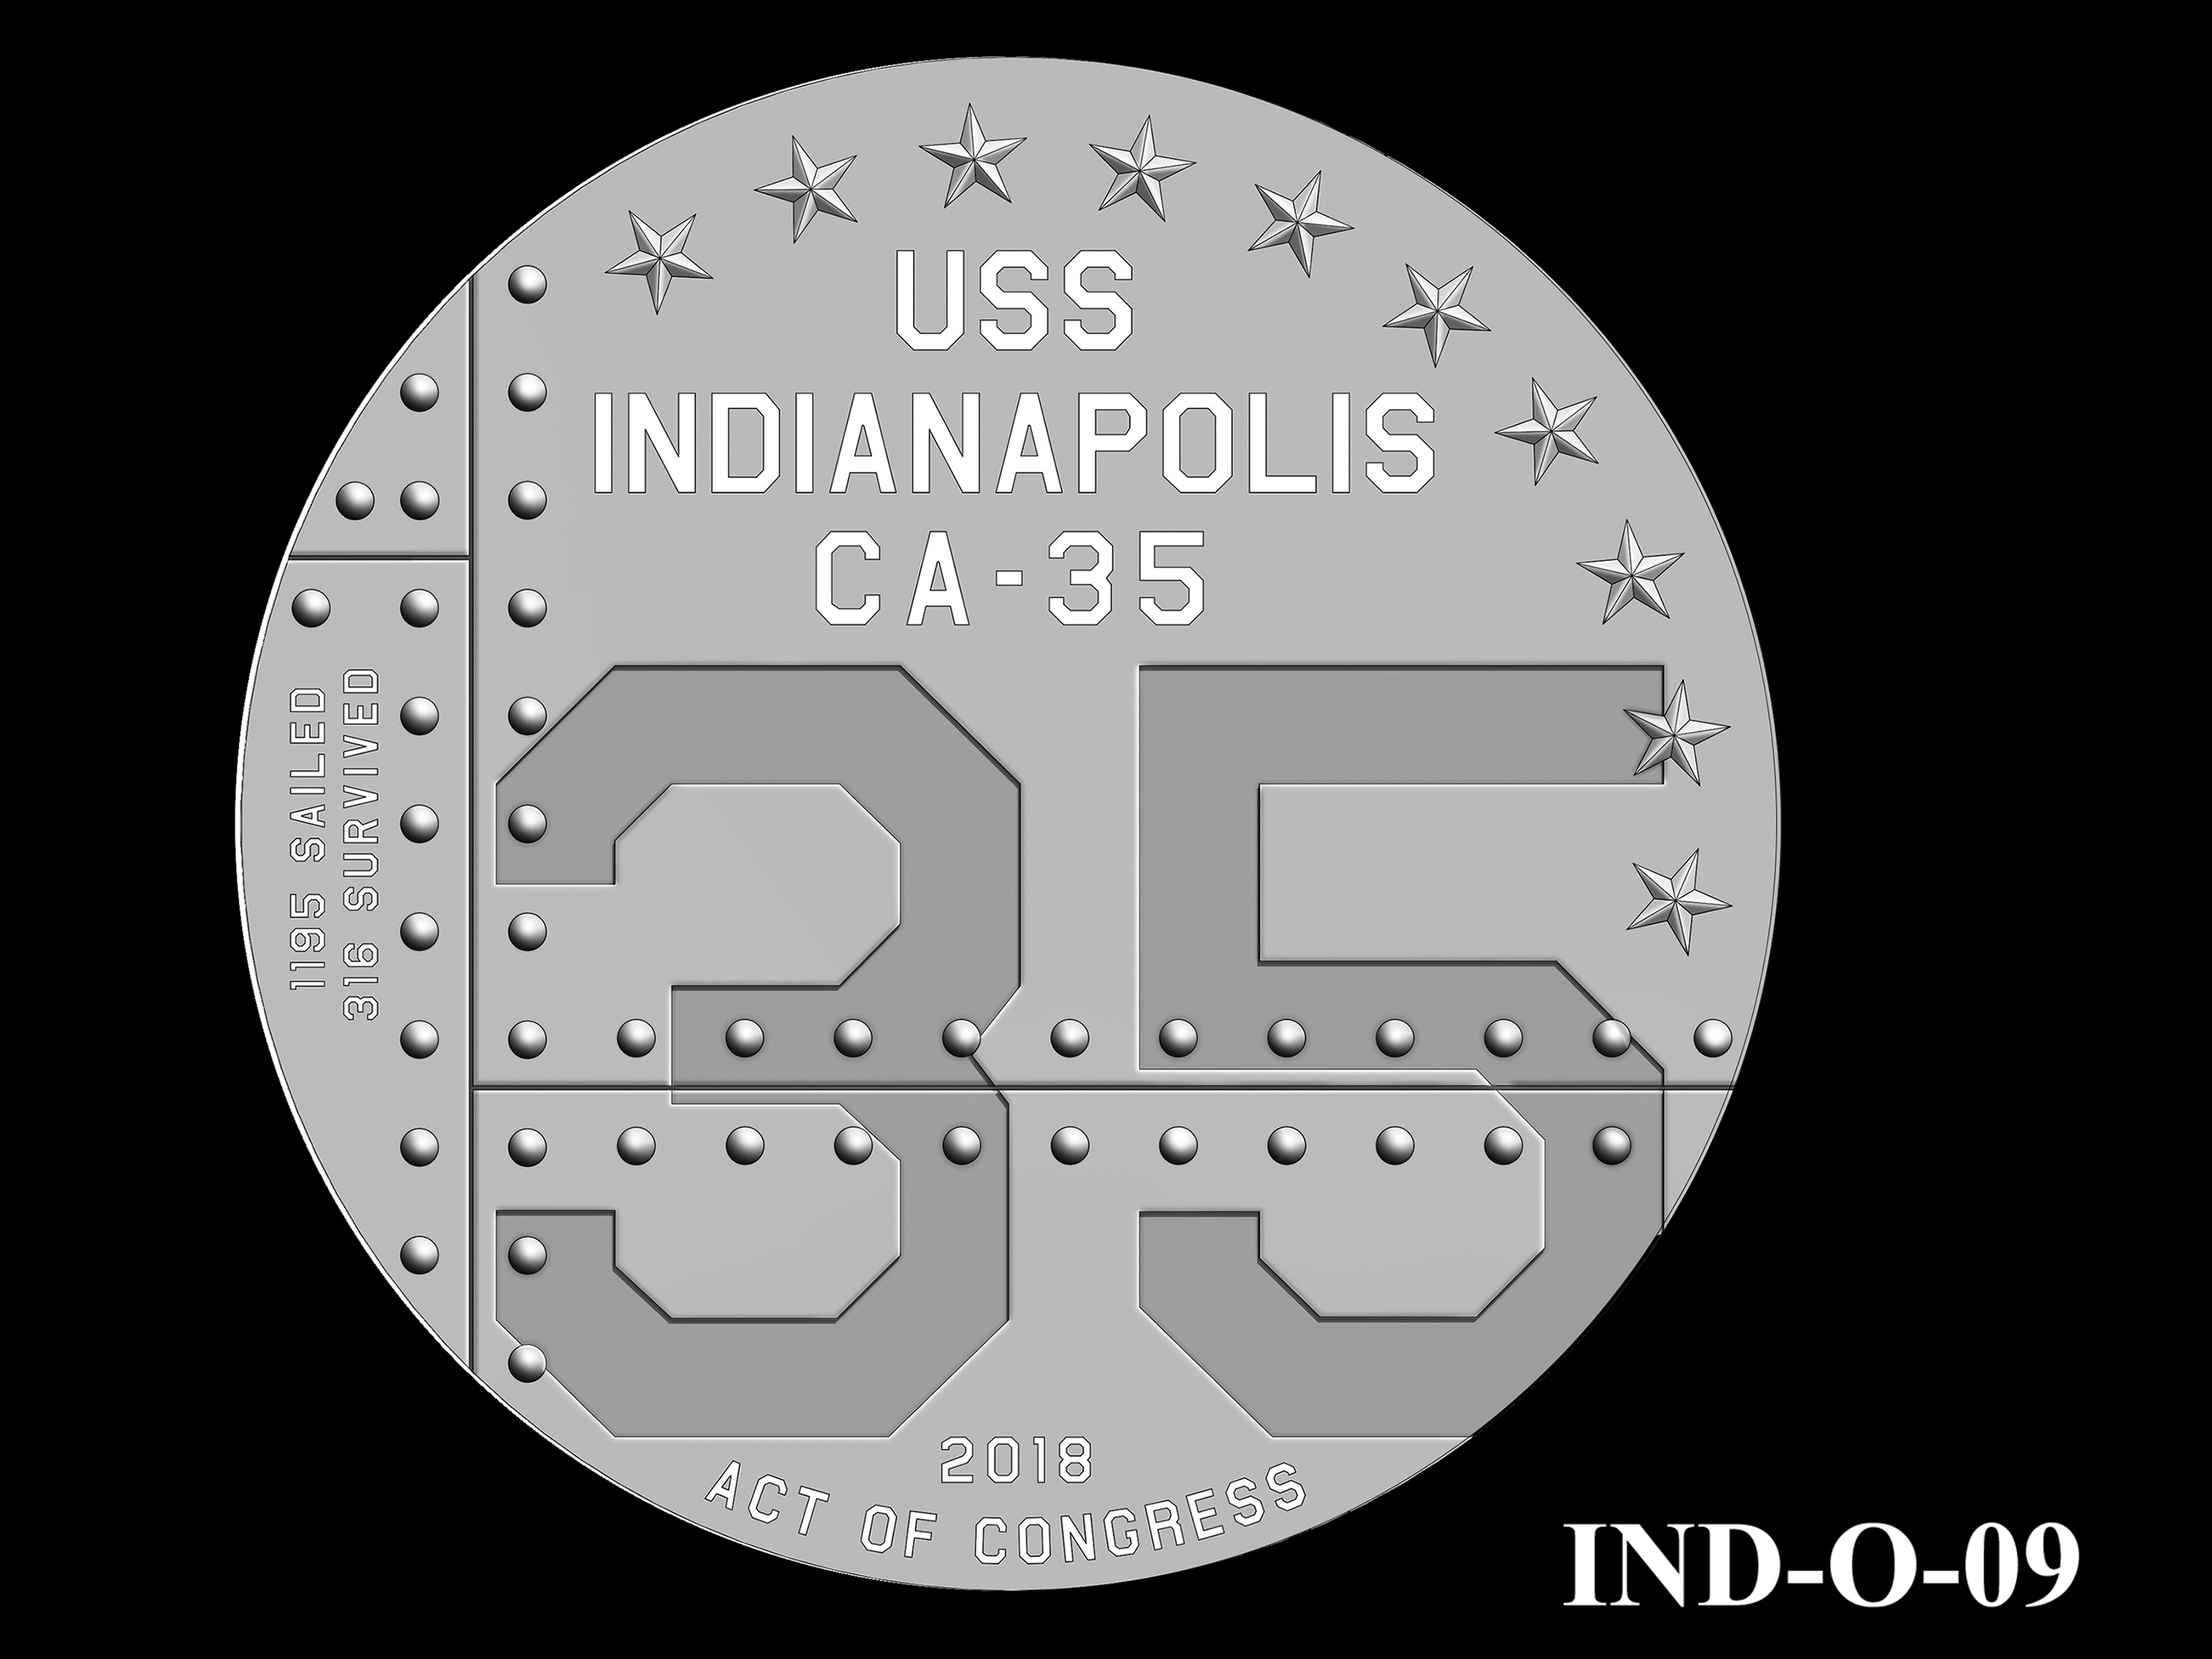 IND-O-09 - USS Indianapolis Congressional Gold Medal - Obverse